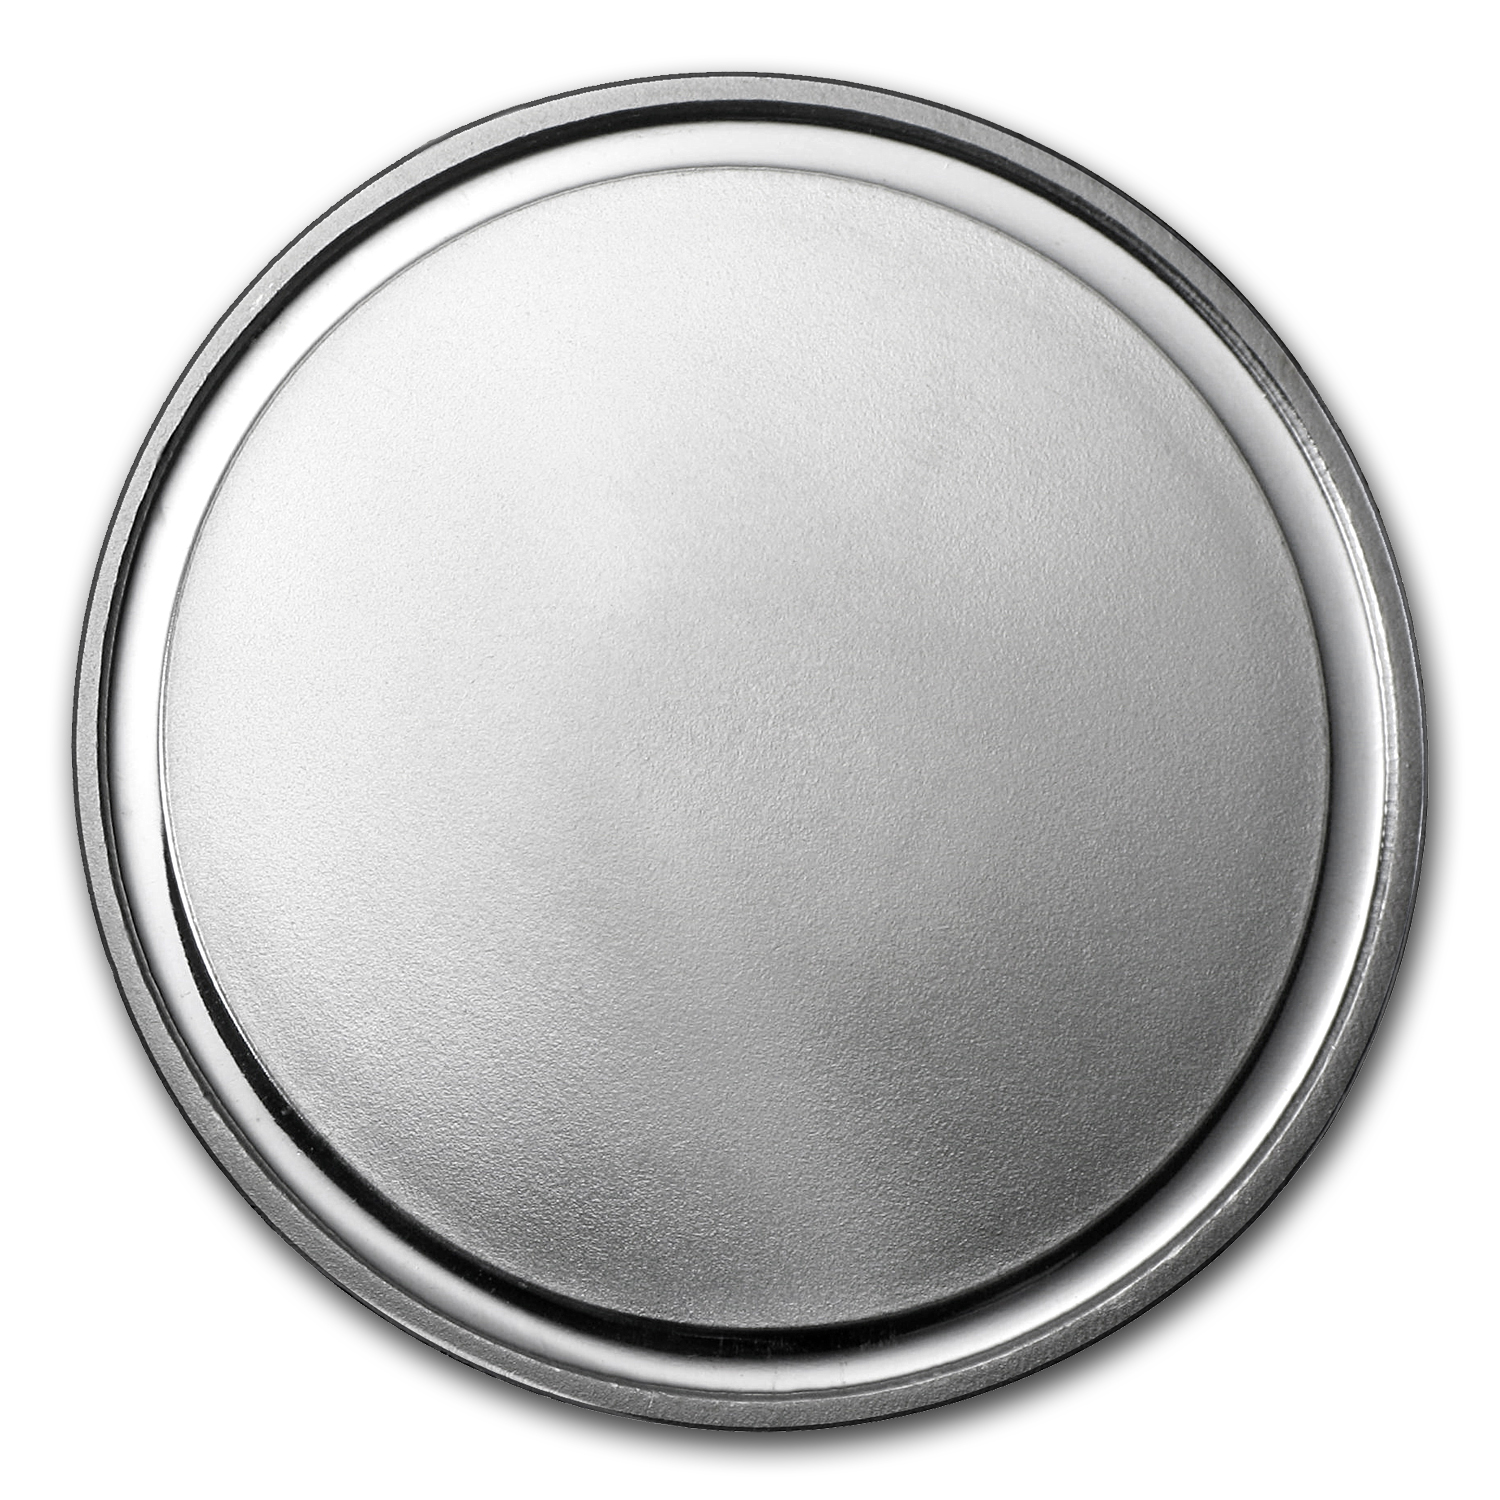 Blank Coin PNG - 152453